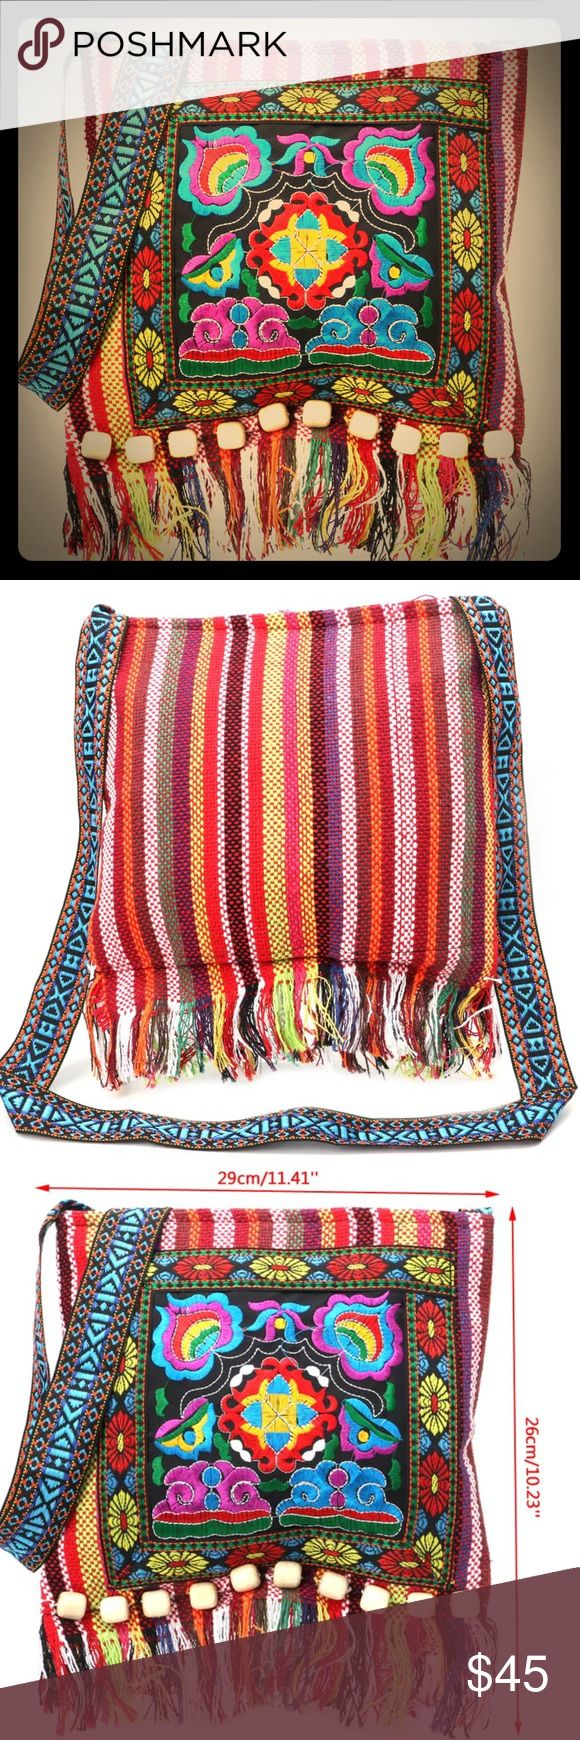 🆕RED CROSSBODY BOHO CHÍC MEXICANA BAG Perfect bag for festivals! Beach! Great Everyday bag that's Boho Super Chíc with a touch of Mexicana glam! Full Zipper closure for piece of mind. CRossbody, lightweight and secure. Fab with Fringe! Turns any outfit from drab to fab. Suburban2Urban Bags Crossbody Bags